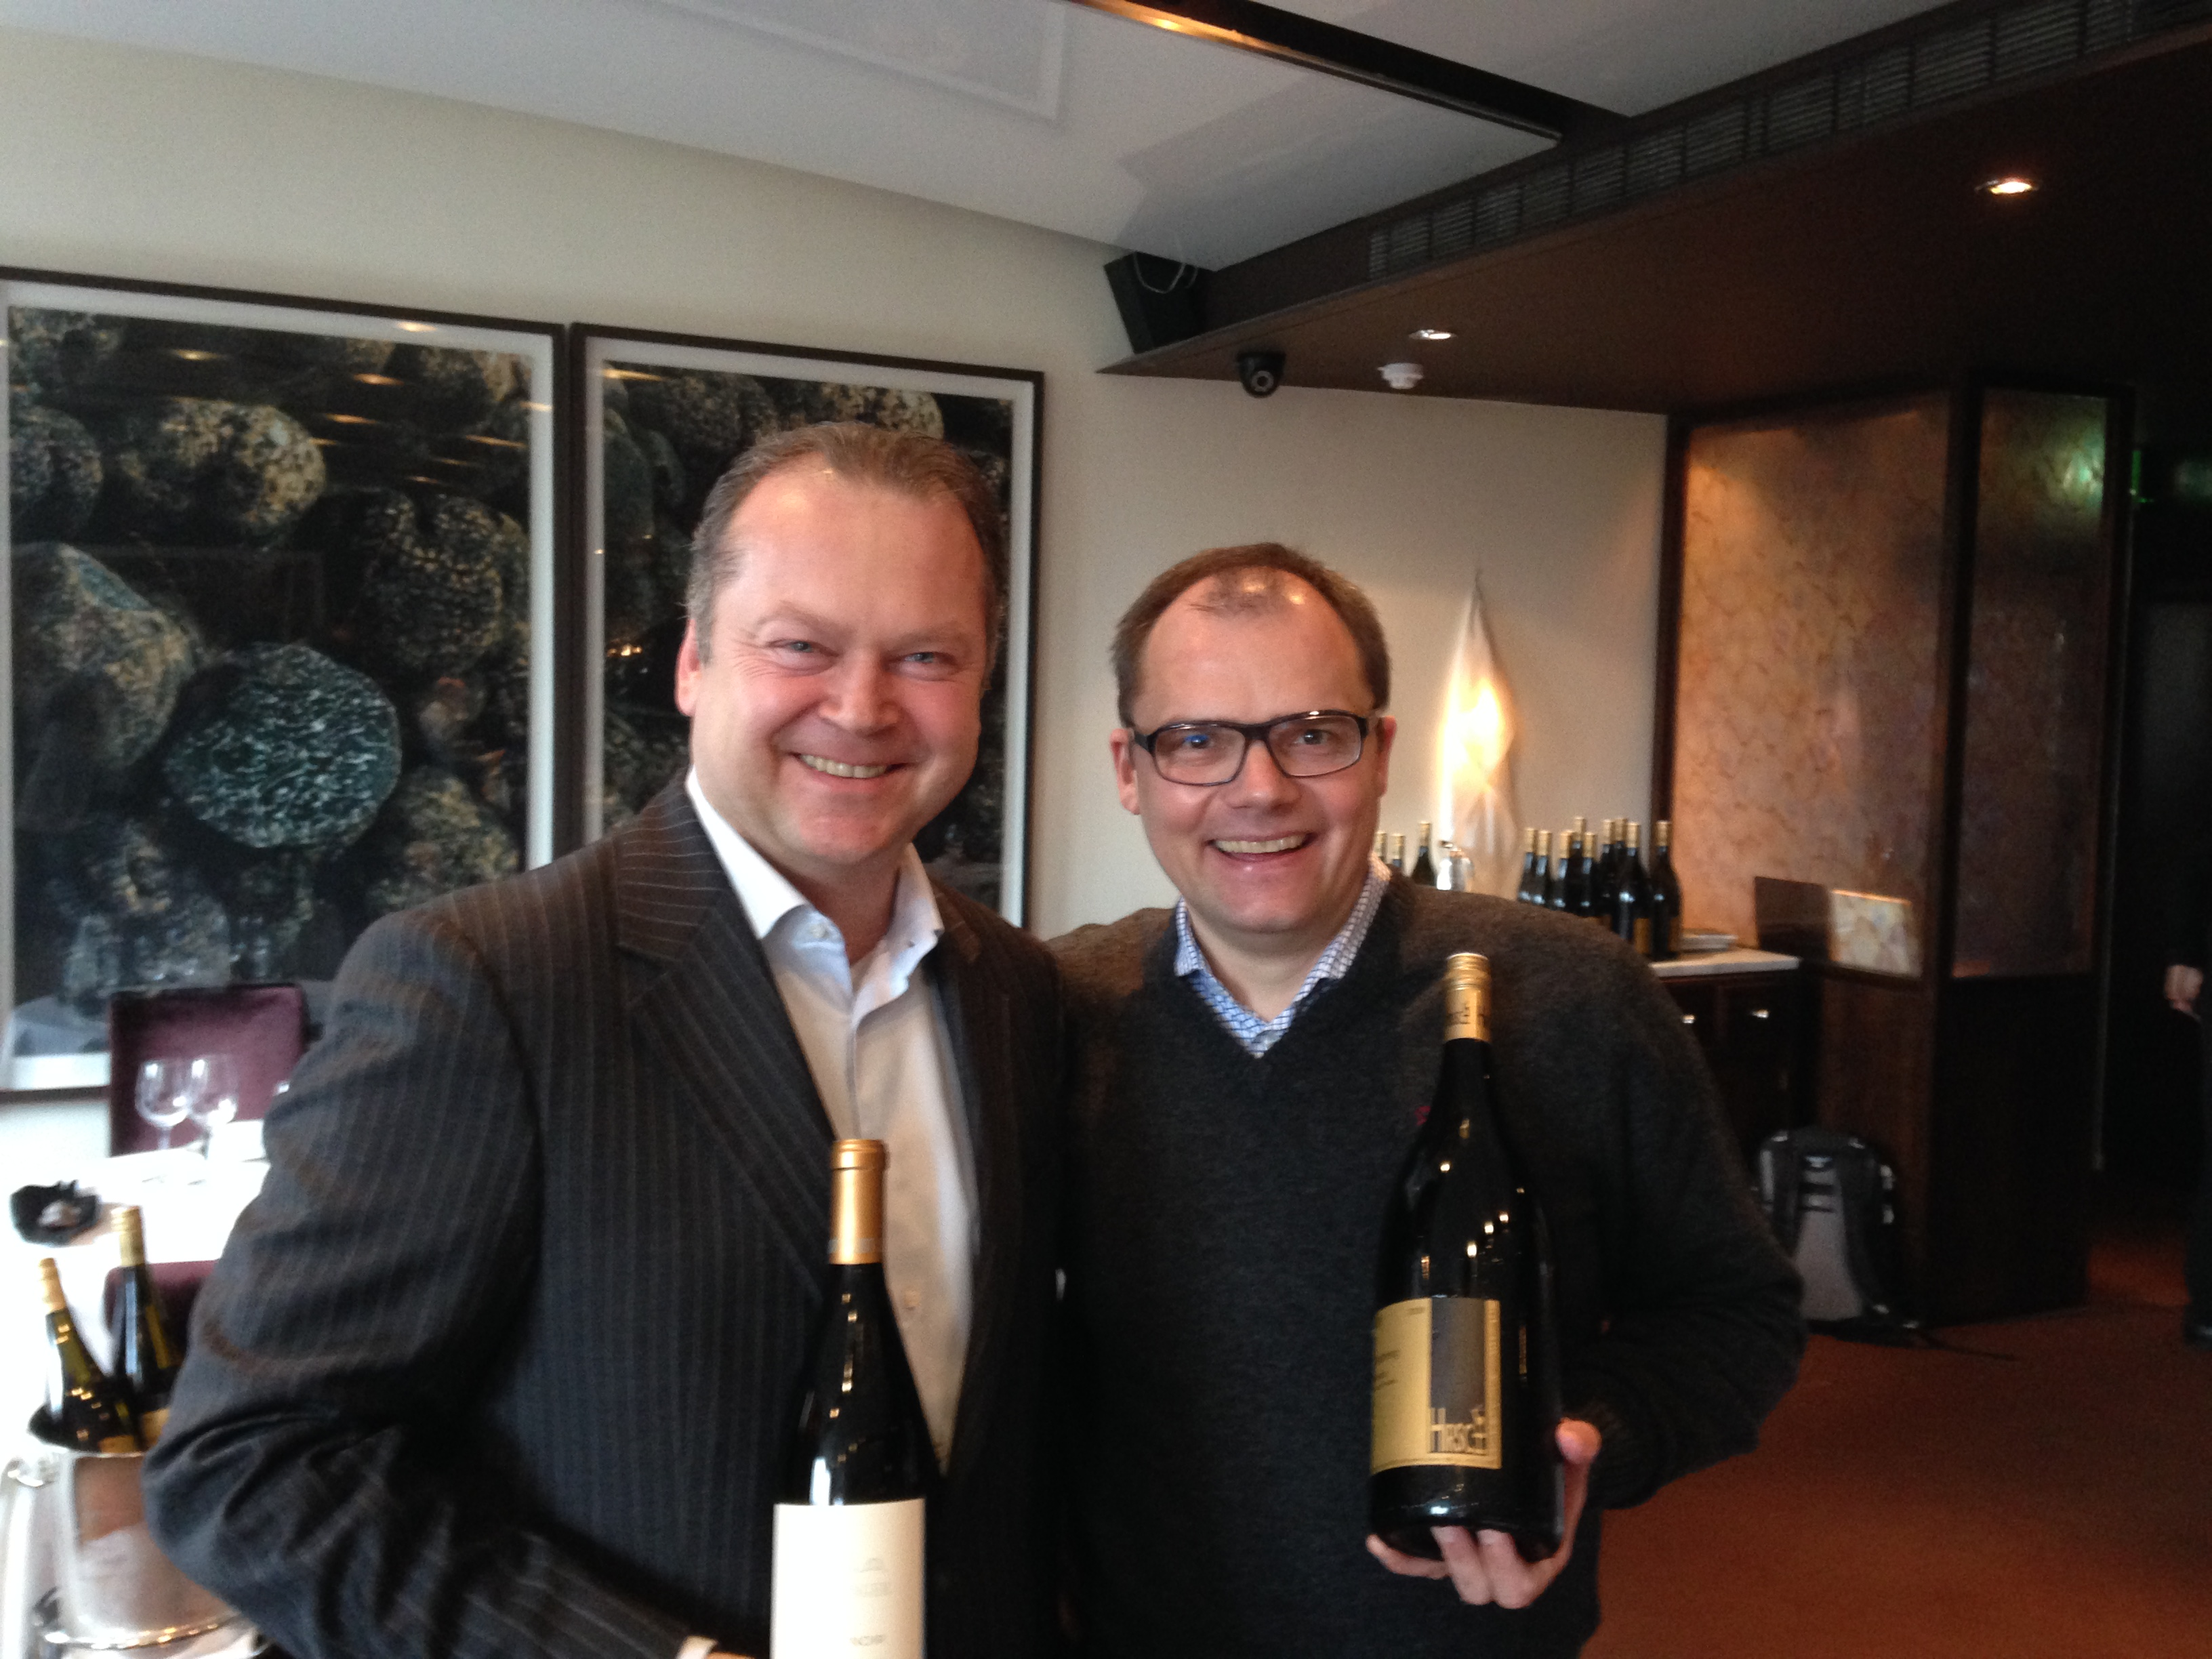 TWO AUSTRIAN WINEMAKERS